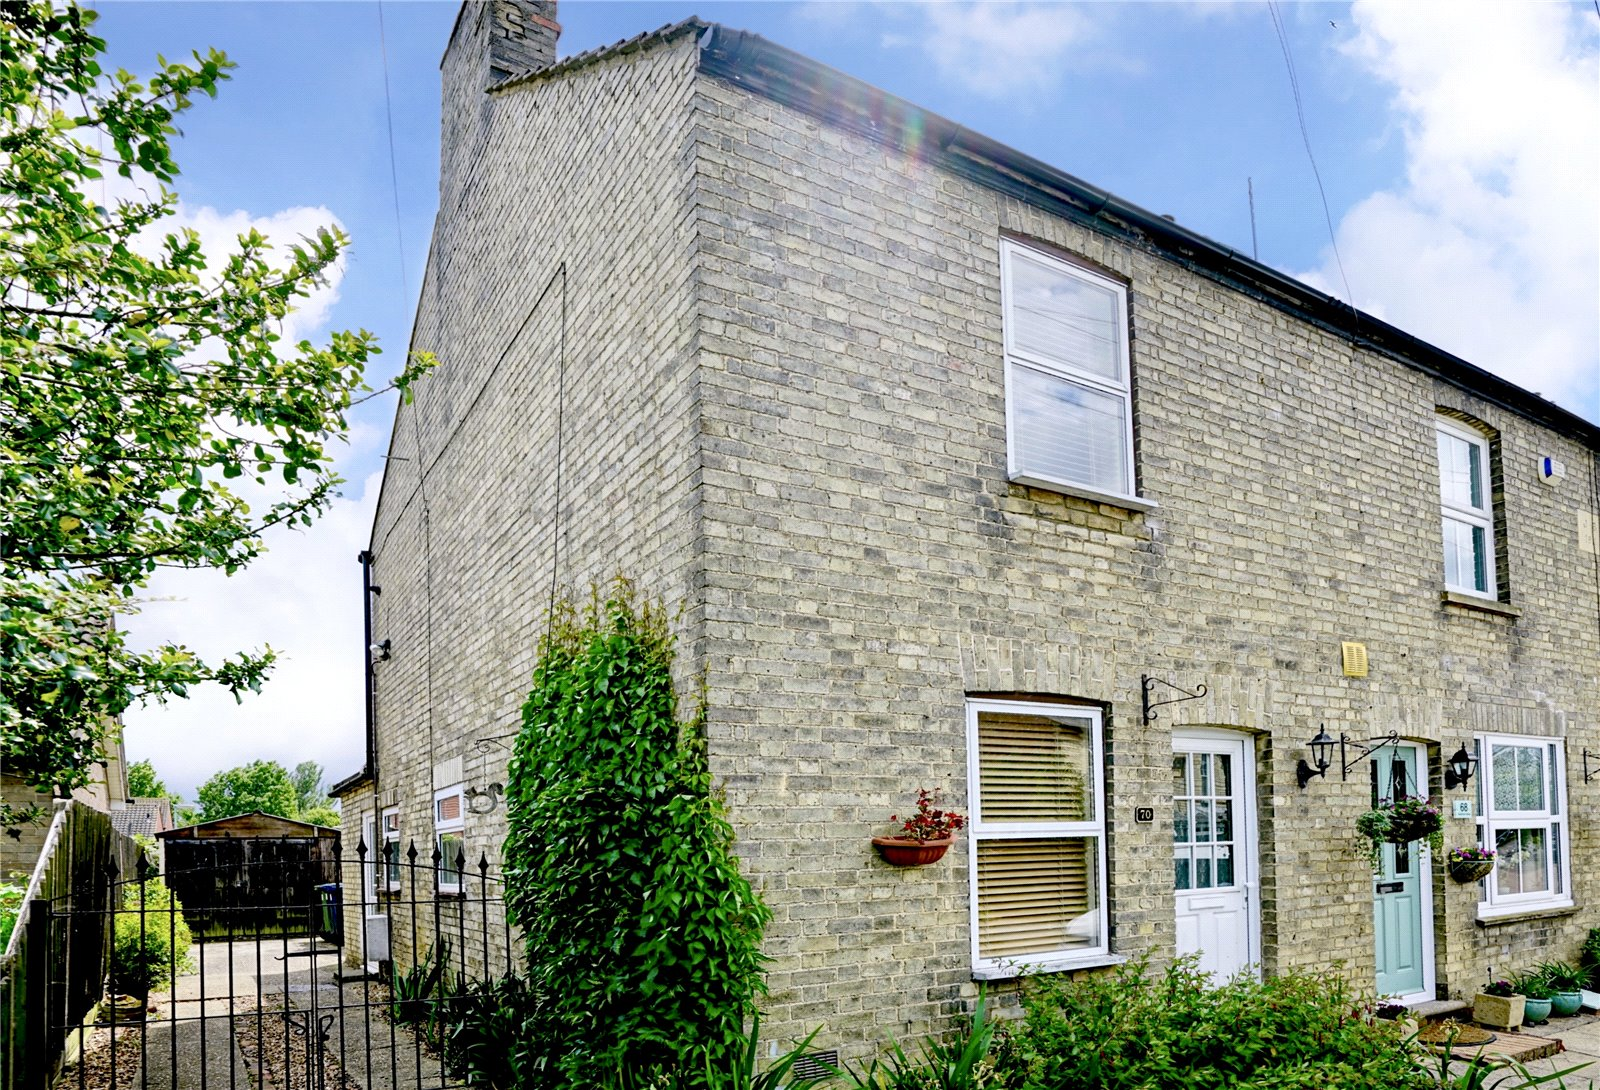 2 bed house for sale in Ackerman Street, Eaton Socon, PE19